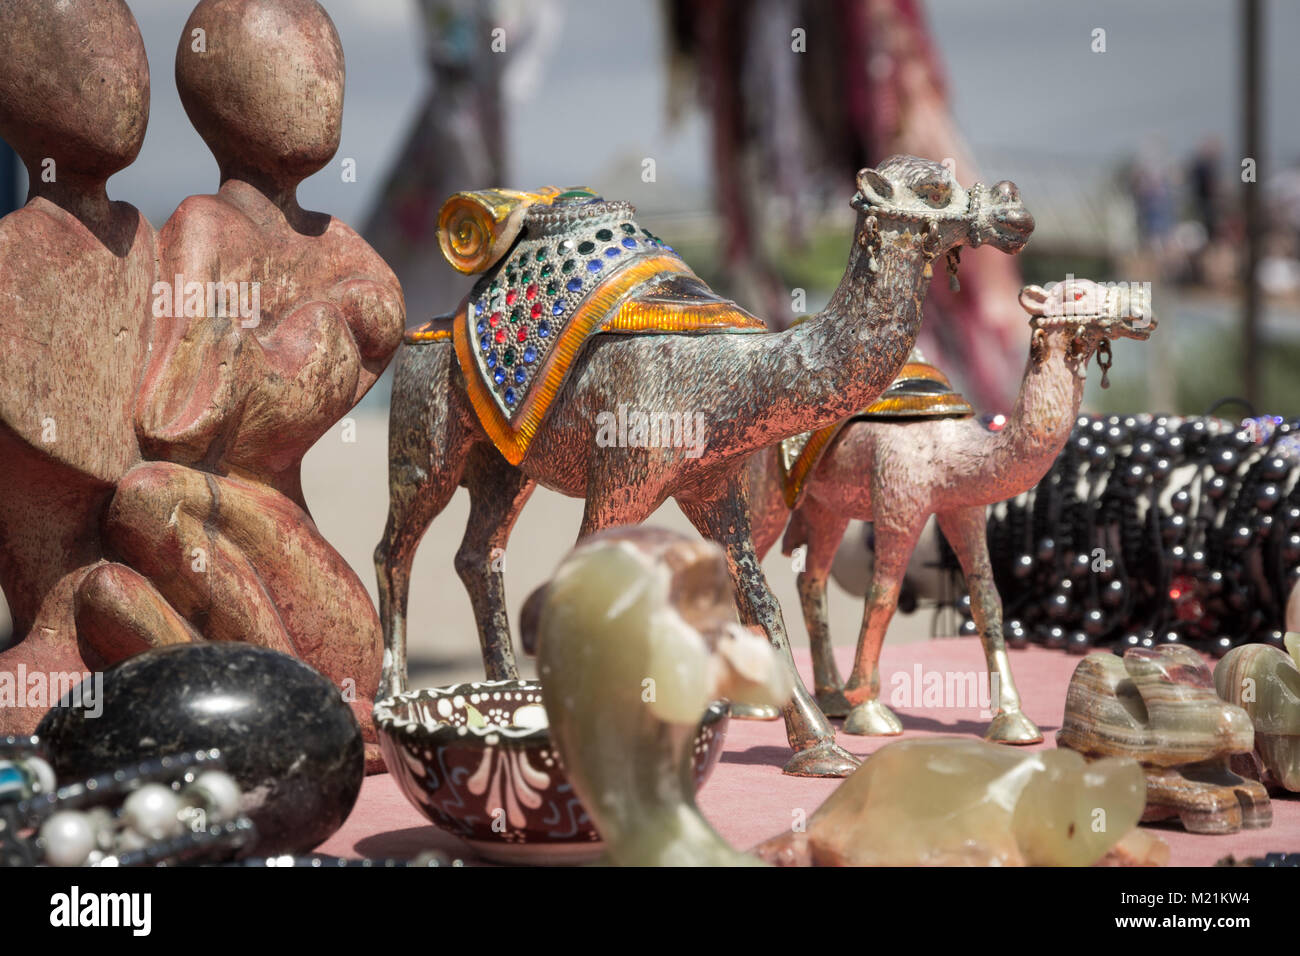 Souvenir Sales Booth with Camels and Figures - Stock Image